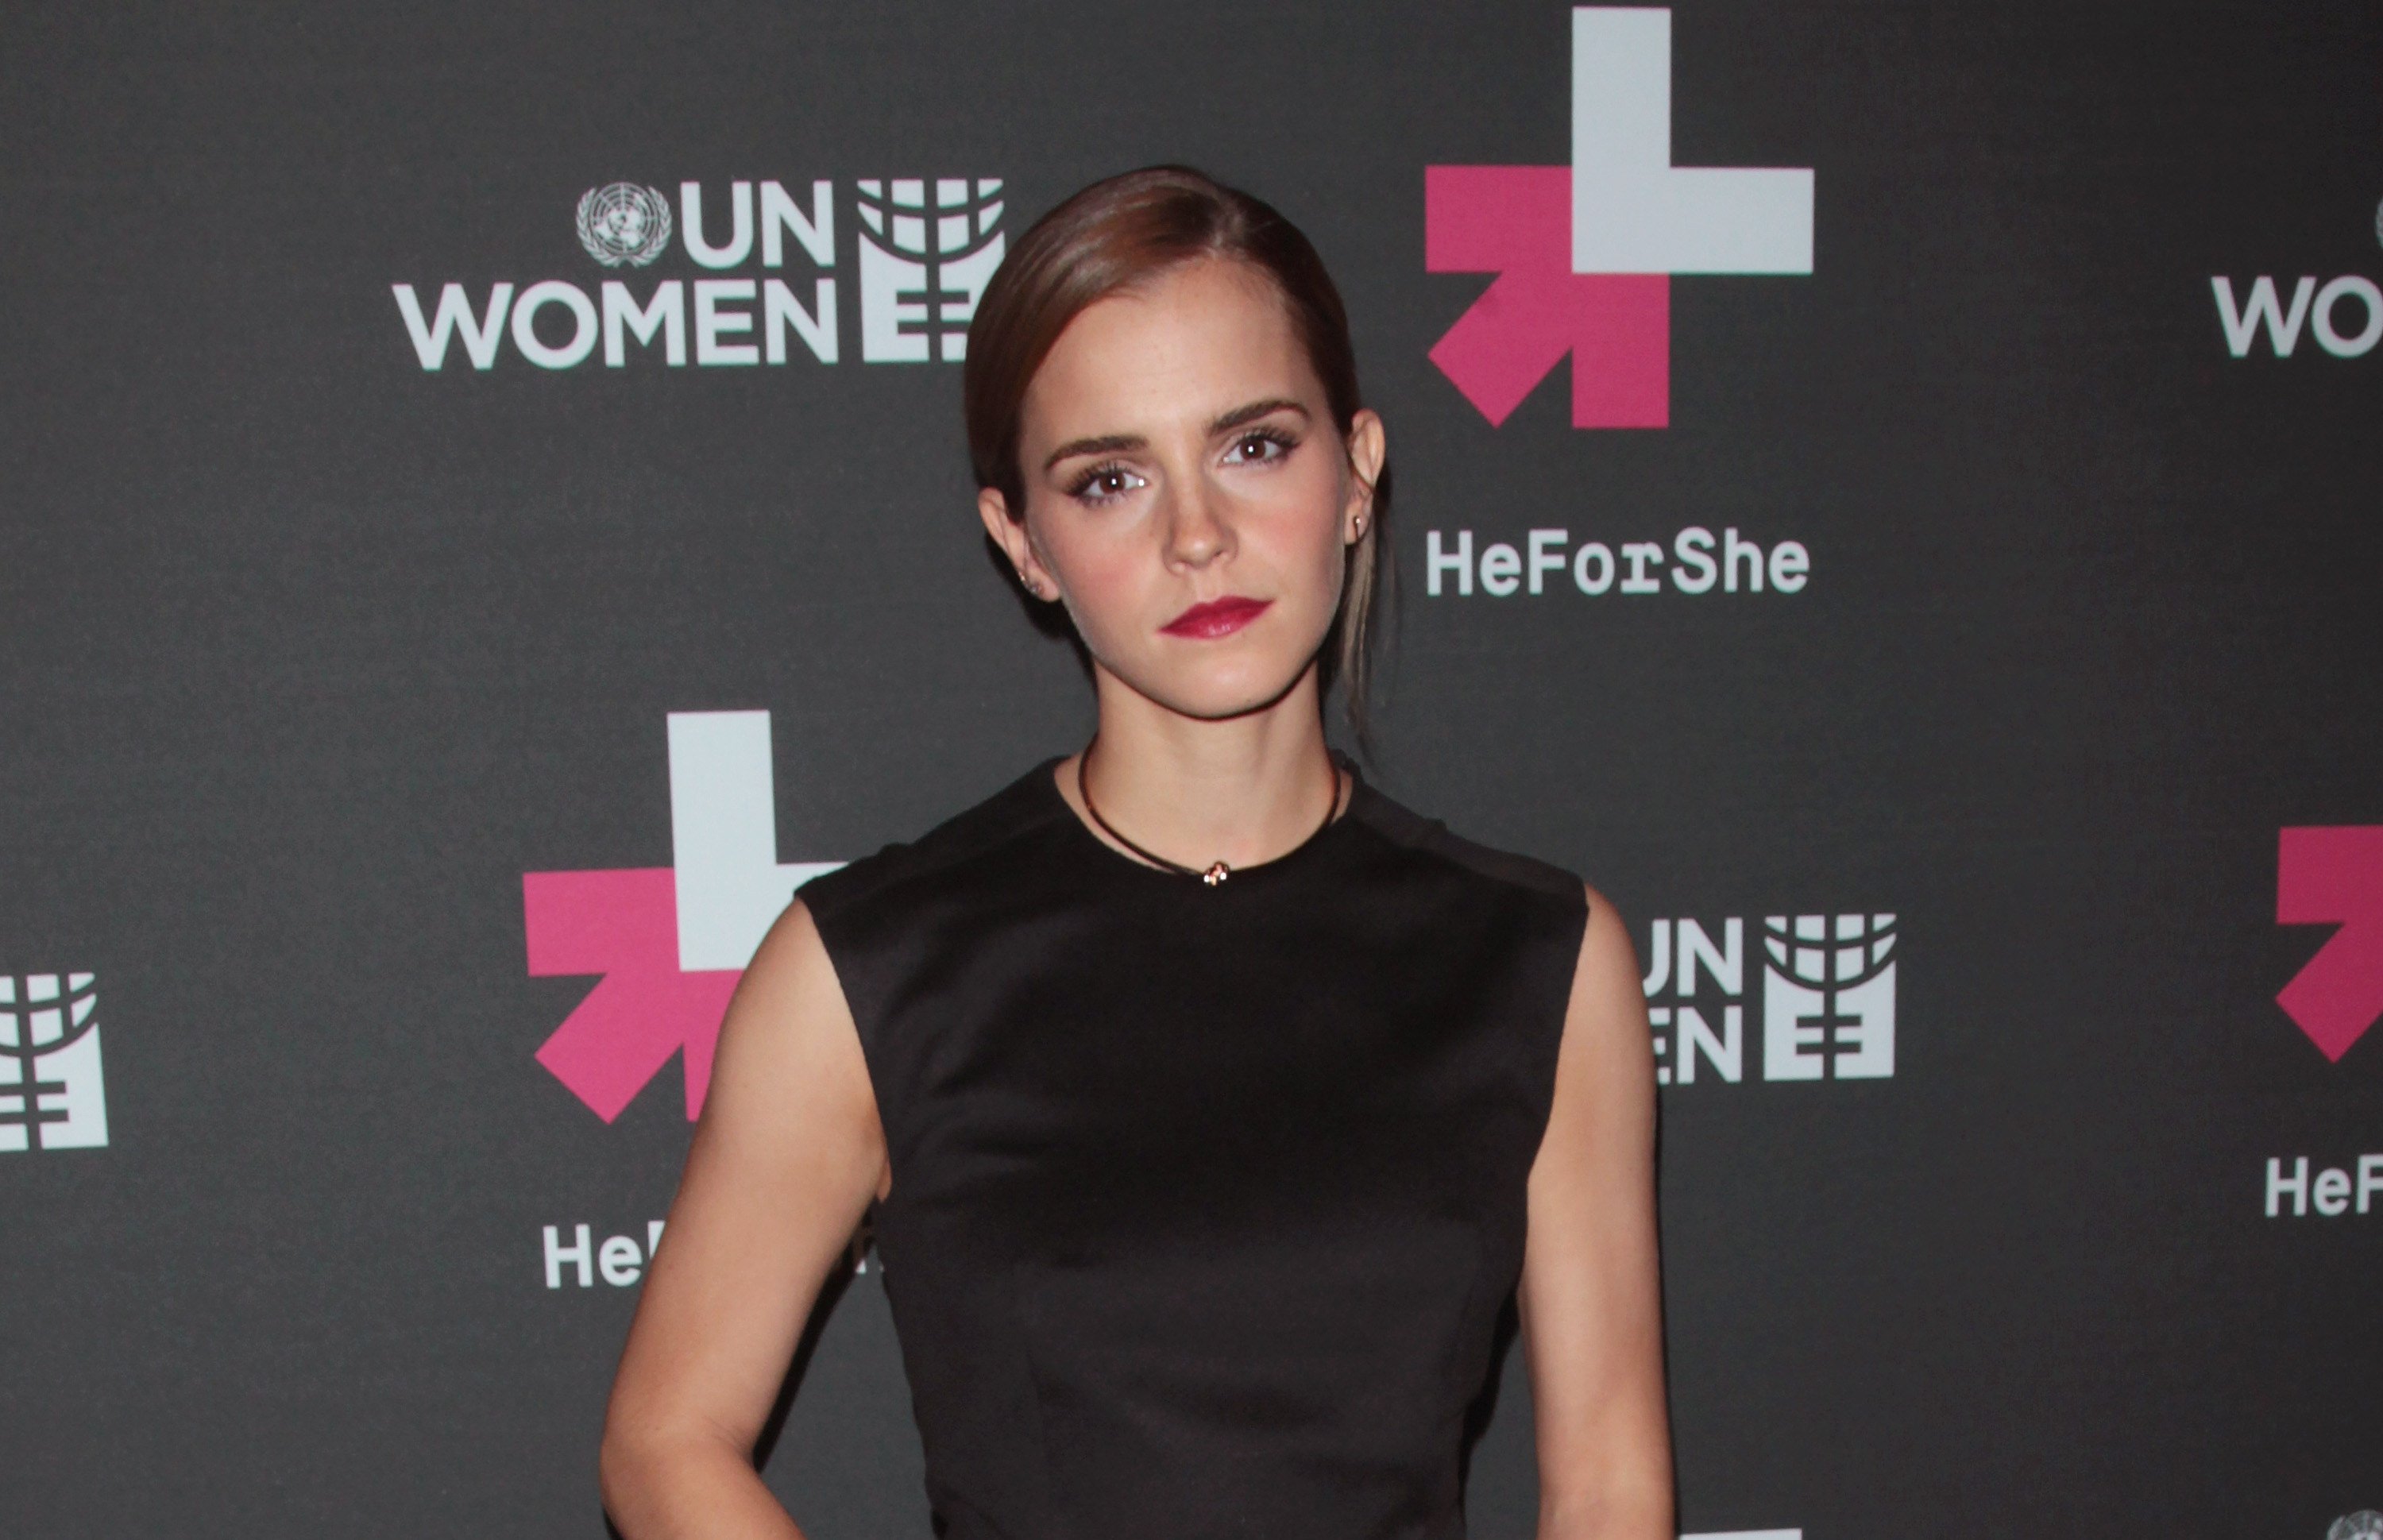 Actress Emma Watson attends the UN Women's  HeForShe  VIP After Party at The Peninsula Hotel on September 20, 2014 in New York City.